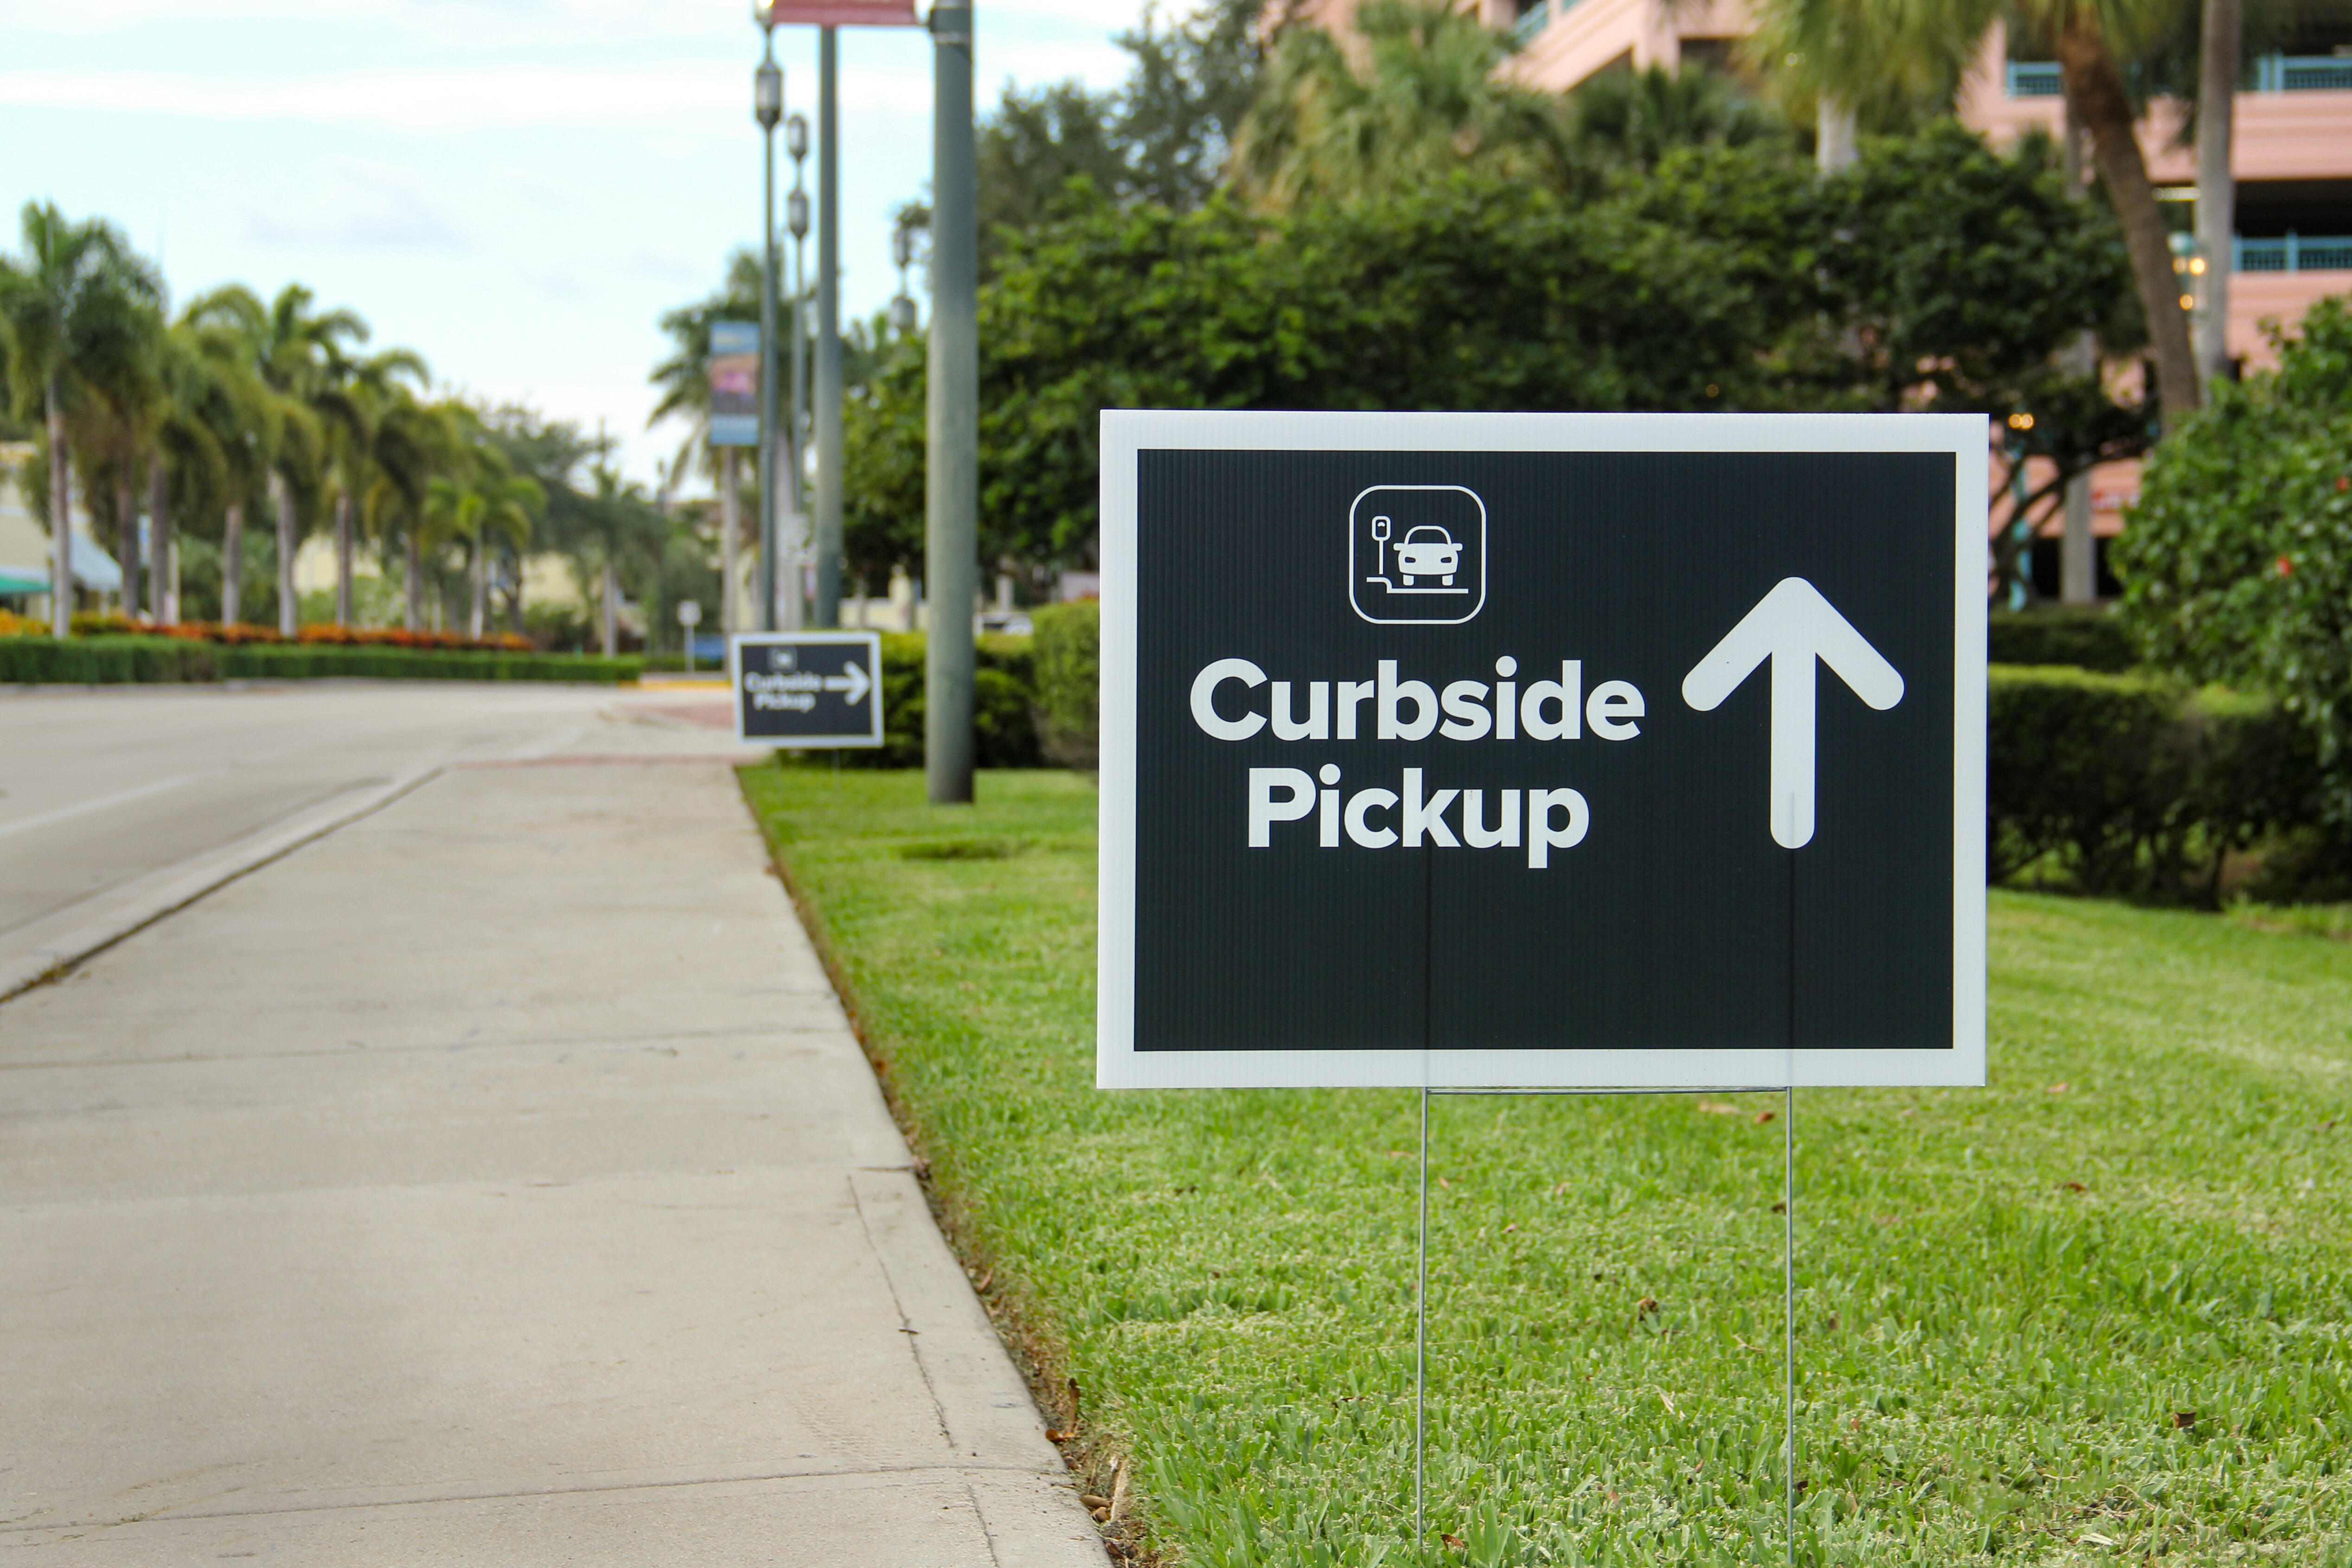 A sign on a parking strip points to the curbside pickup area at a parking lot.